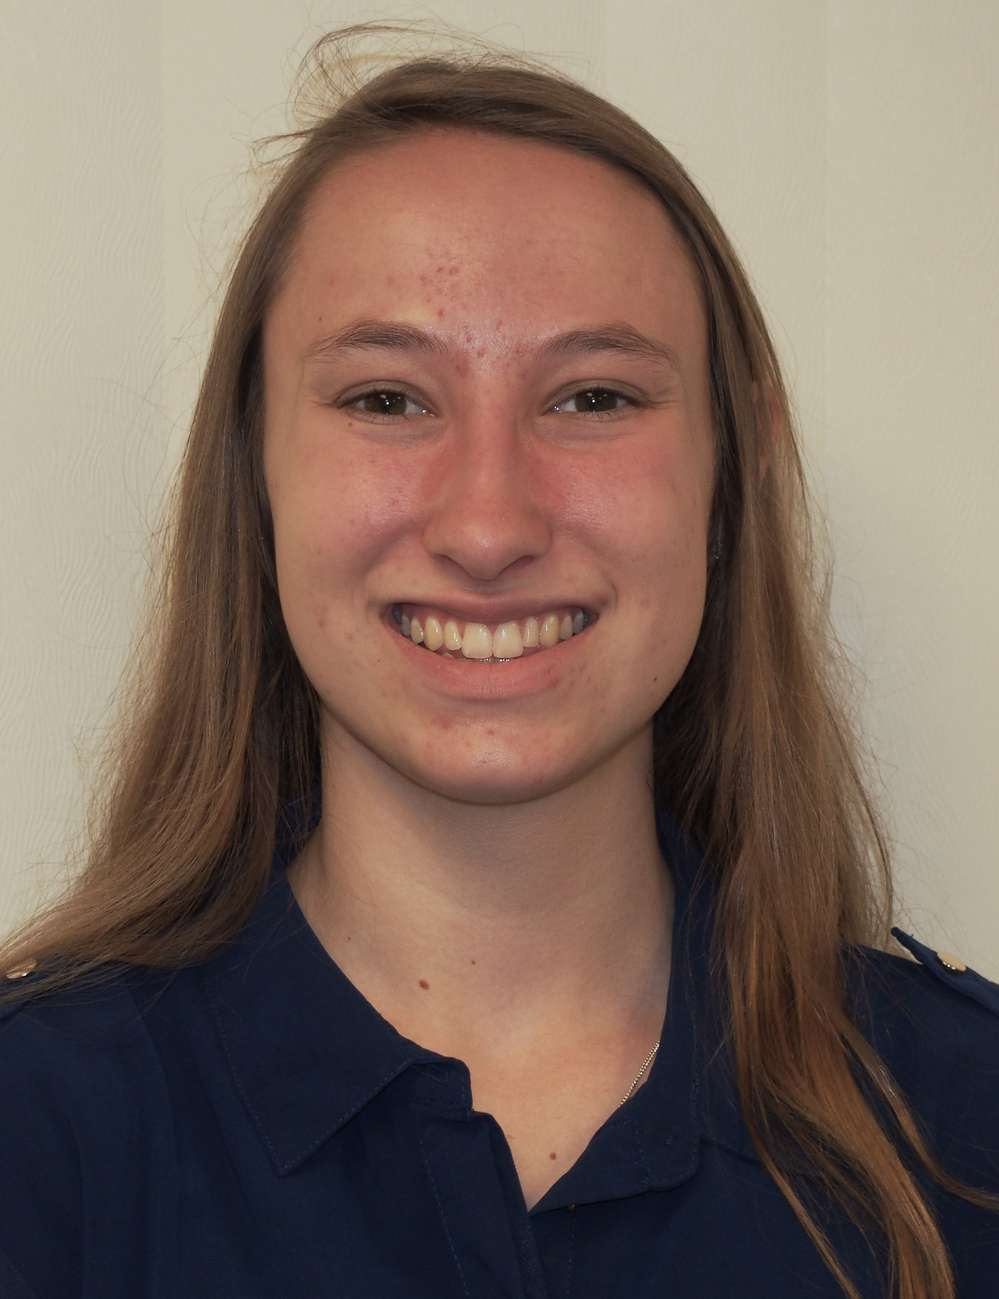 Bryn E. Waligorski, a graduate of Plainfield Central High School, will be attending Iowa State and majoring in civil engineering. Her parents are Monica and Ignacy Waligorski of Plainfield Construction, a CAWGC member.